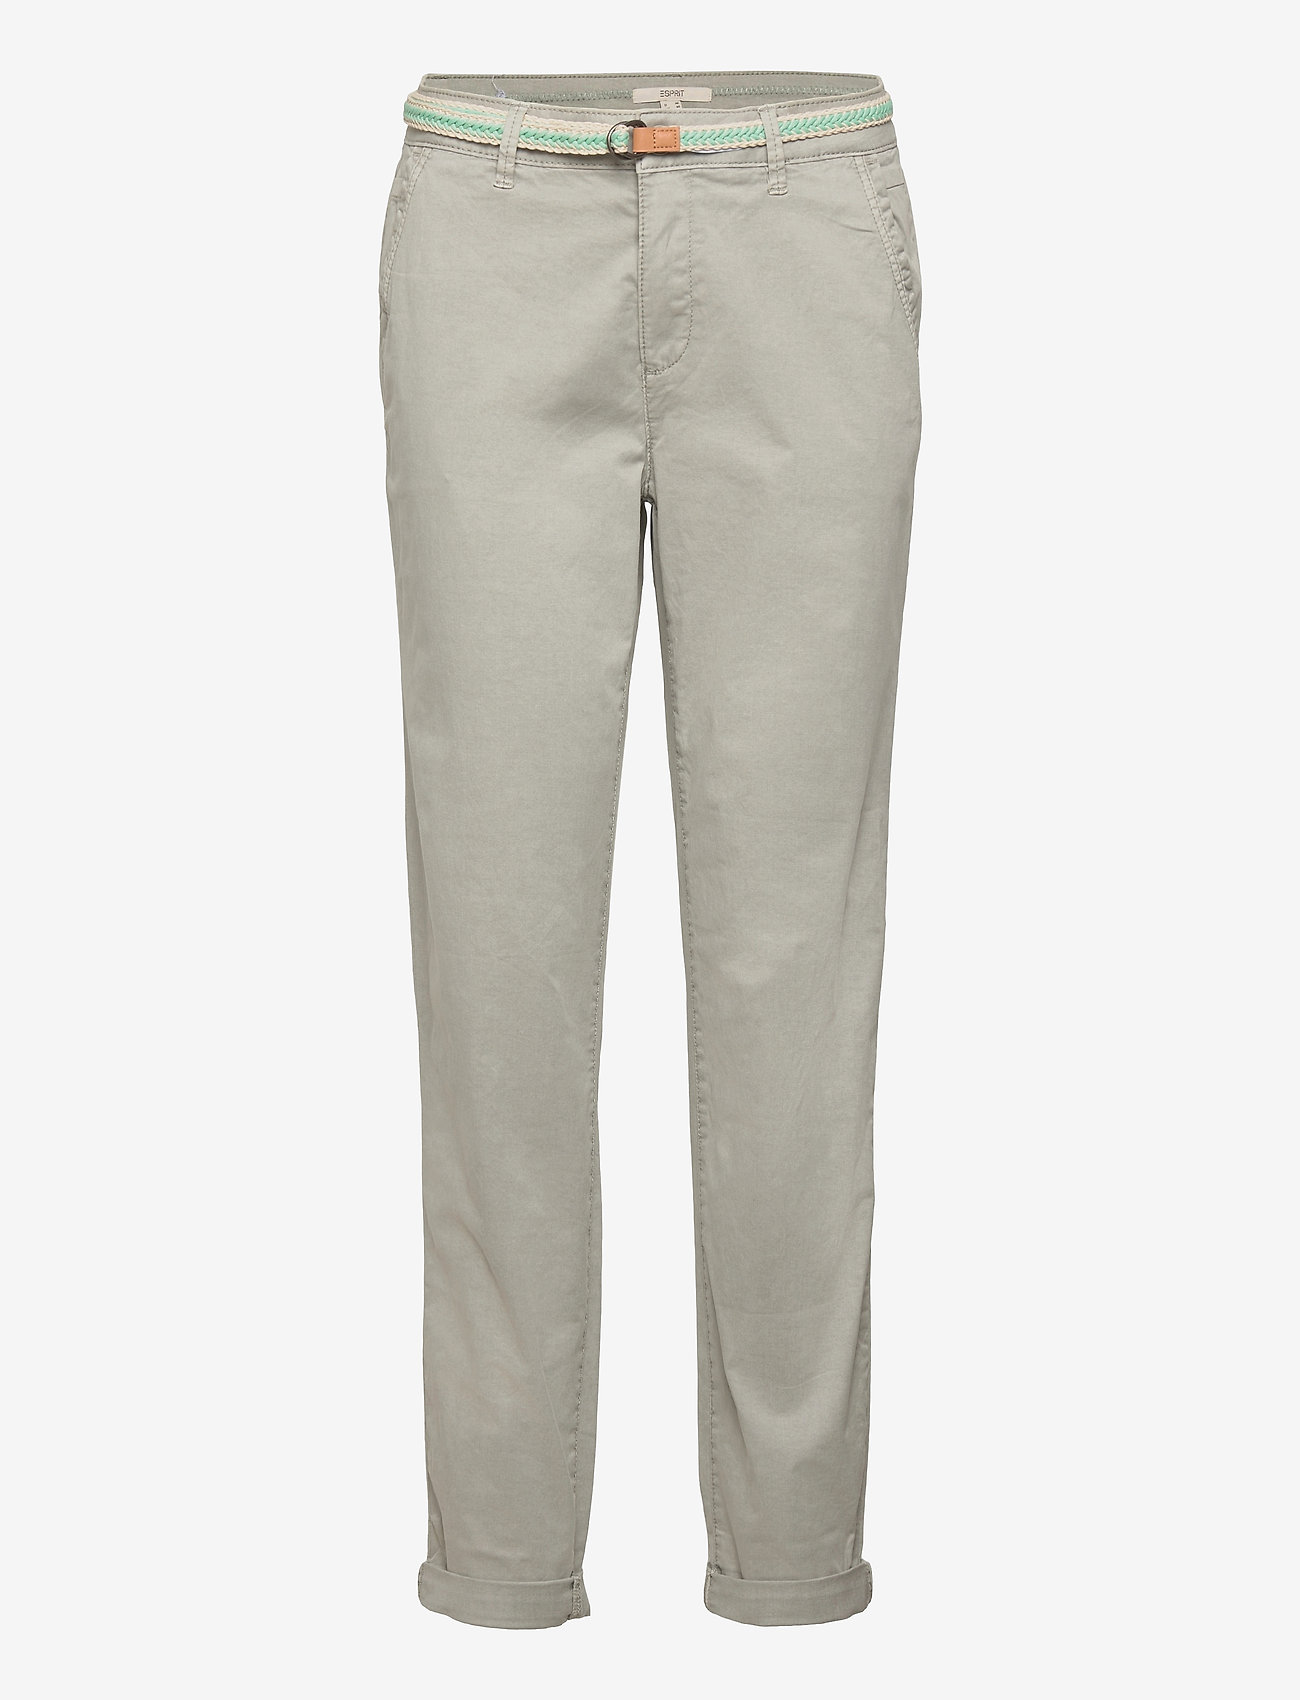 Esprit Casual - Pants woven - chinos - light grey - 0